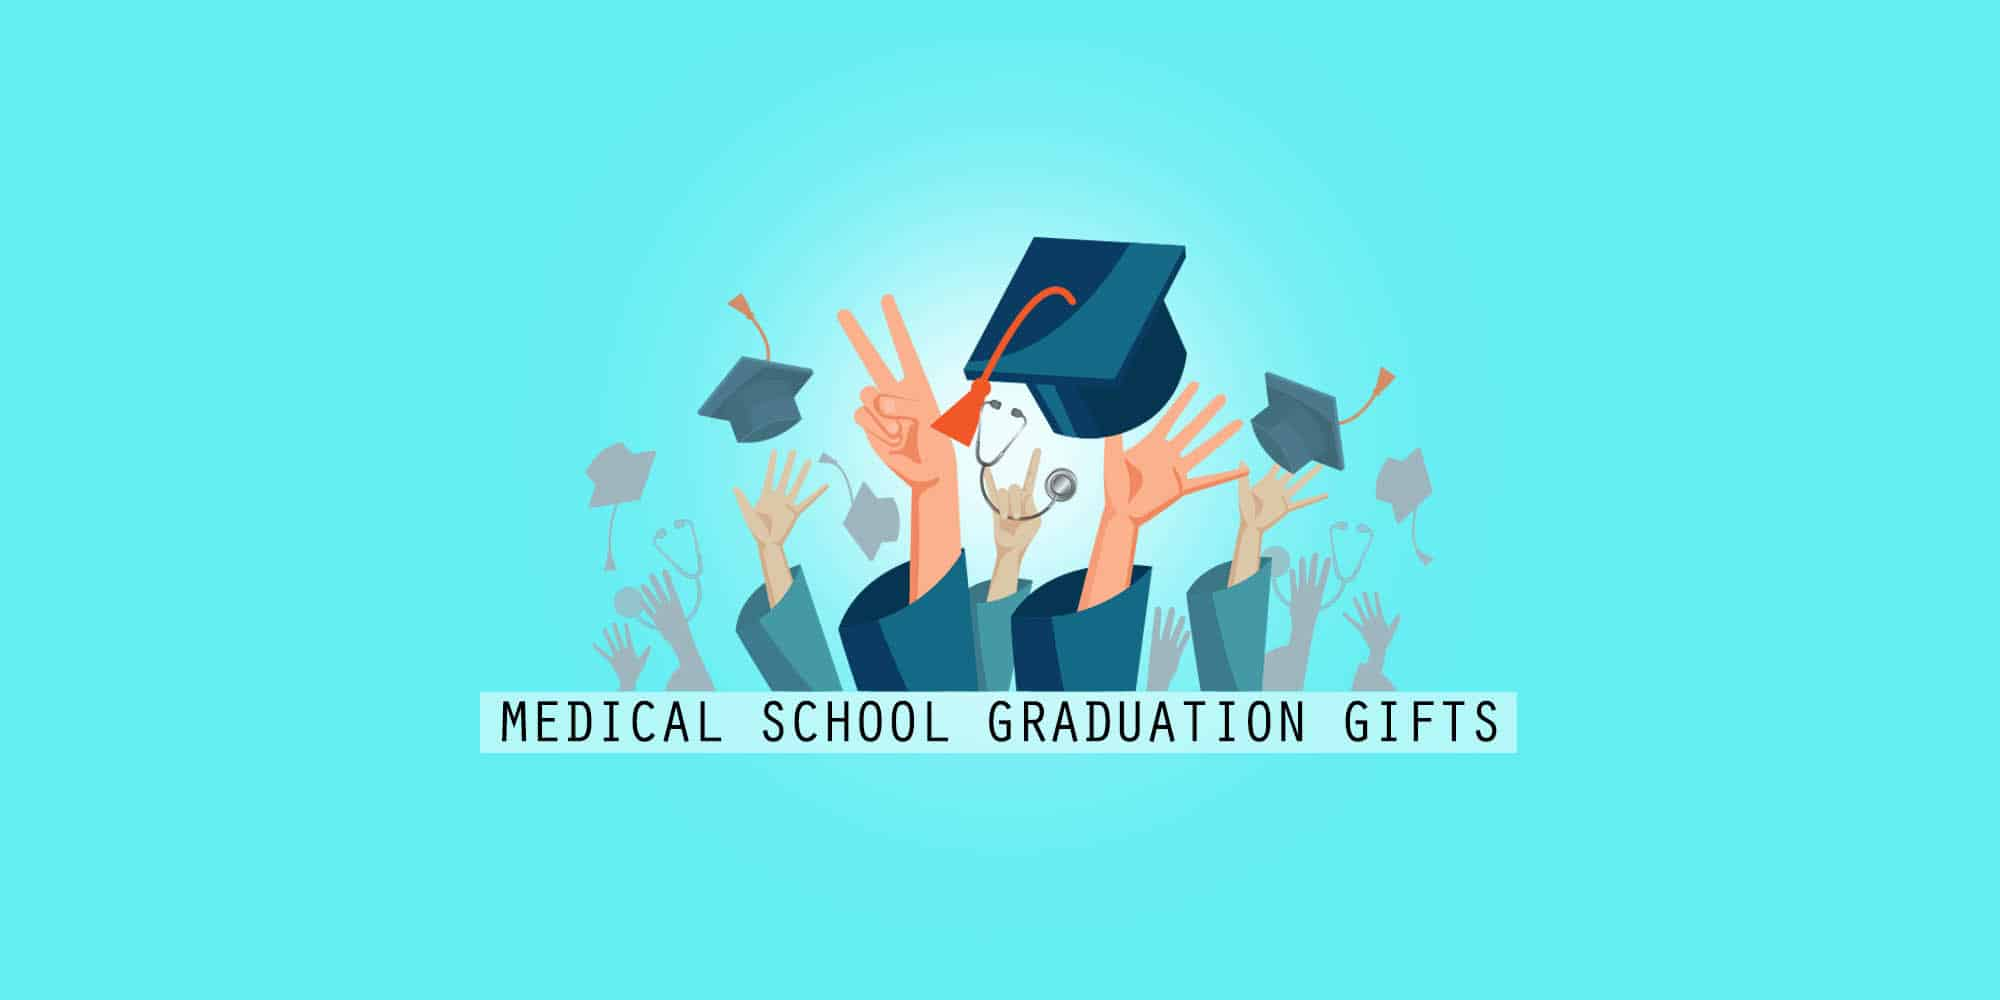 30 Best Medical School Graduation Gifts: Unique And Thoughtful Gift Ideas (2021)